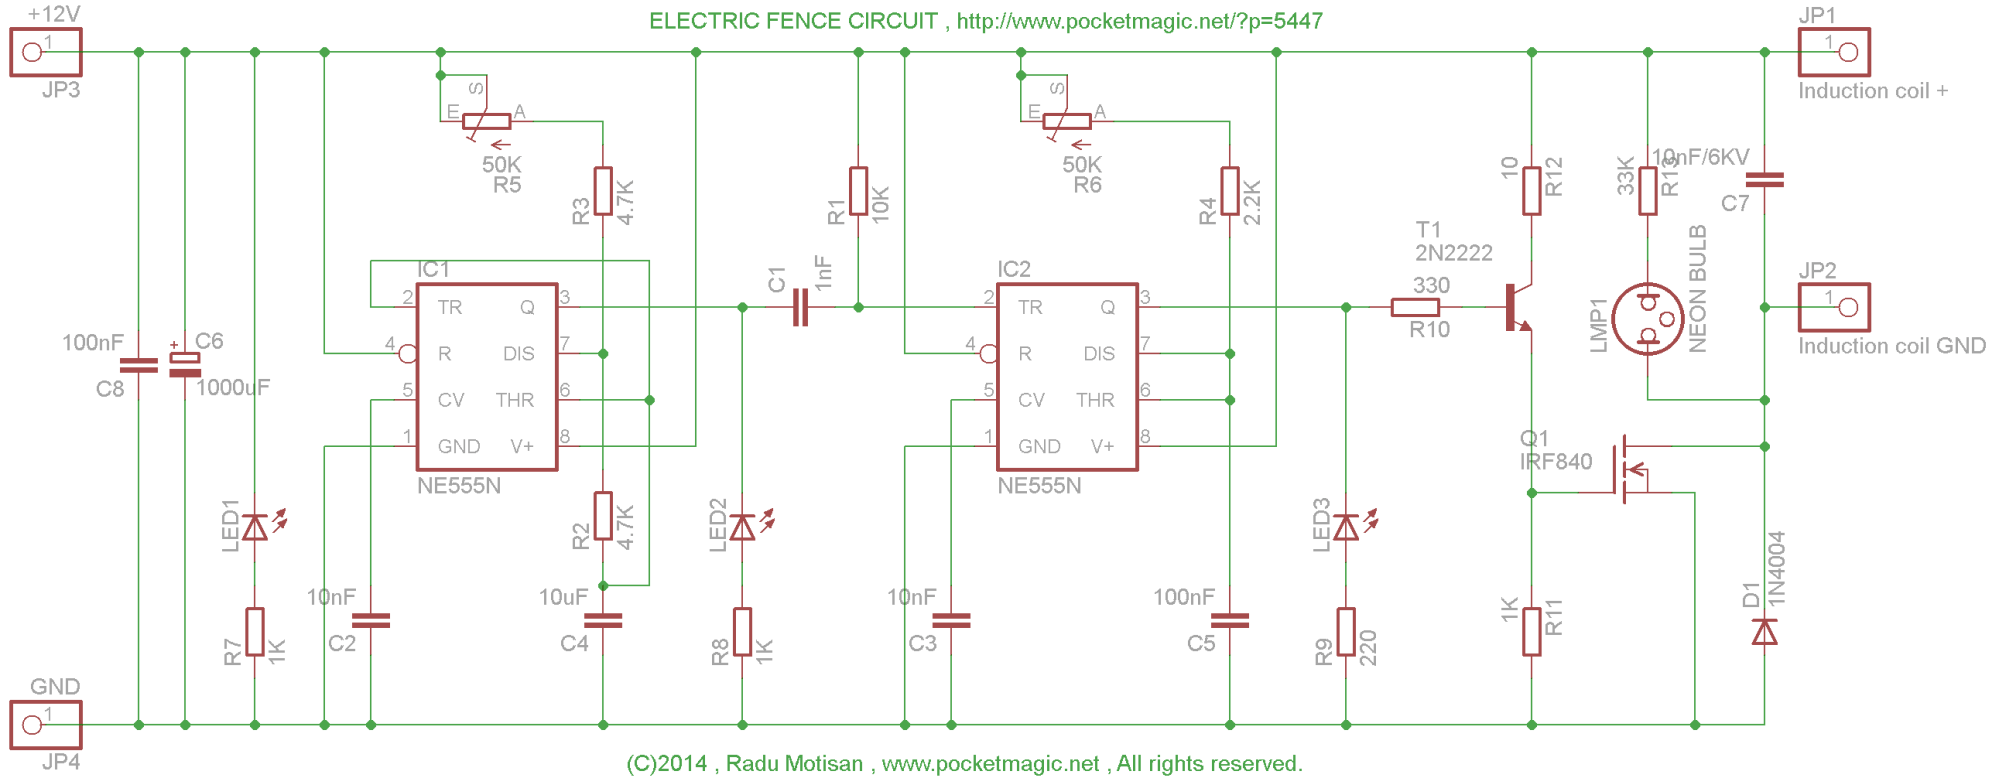 hight resolution of electric fence circuit diagram wiring diagram list electric fence circuit for perimeter protection pocketmagic electric fence